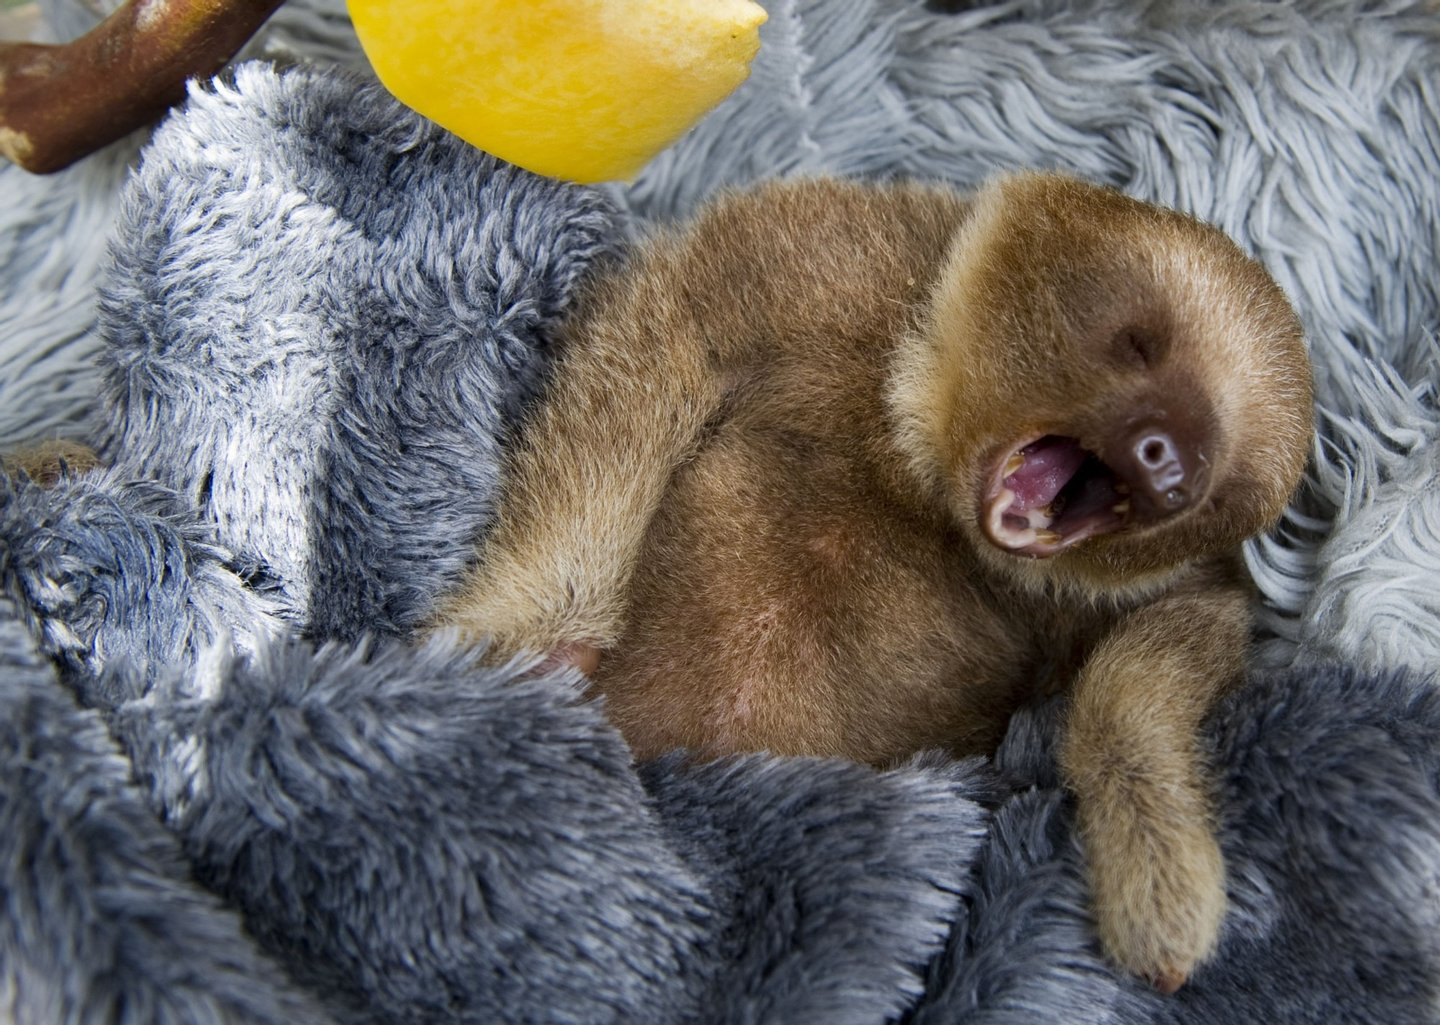 A baby two-toed sloth (Choloepus) yawns at the Aiunau Foundation in Caldas, some 25 km south of Medellin, Antioquia department, Colombia on September 15, 2012. Croatian scientist Tinka Plese created the foundation 10 years ago, where sloths --which have been captured by illegal wildlife traffickers and then sold to people between US40 to 150 dollars-- are rescued, rehabilitated and released. More than 700 sloths have been released to date. AFP PHOTO/Raul ARBOLEDA        (Photo credit should read RAUL ARBOLEDA/AFP/GettyImages)